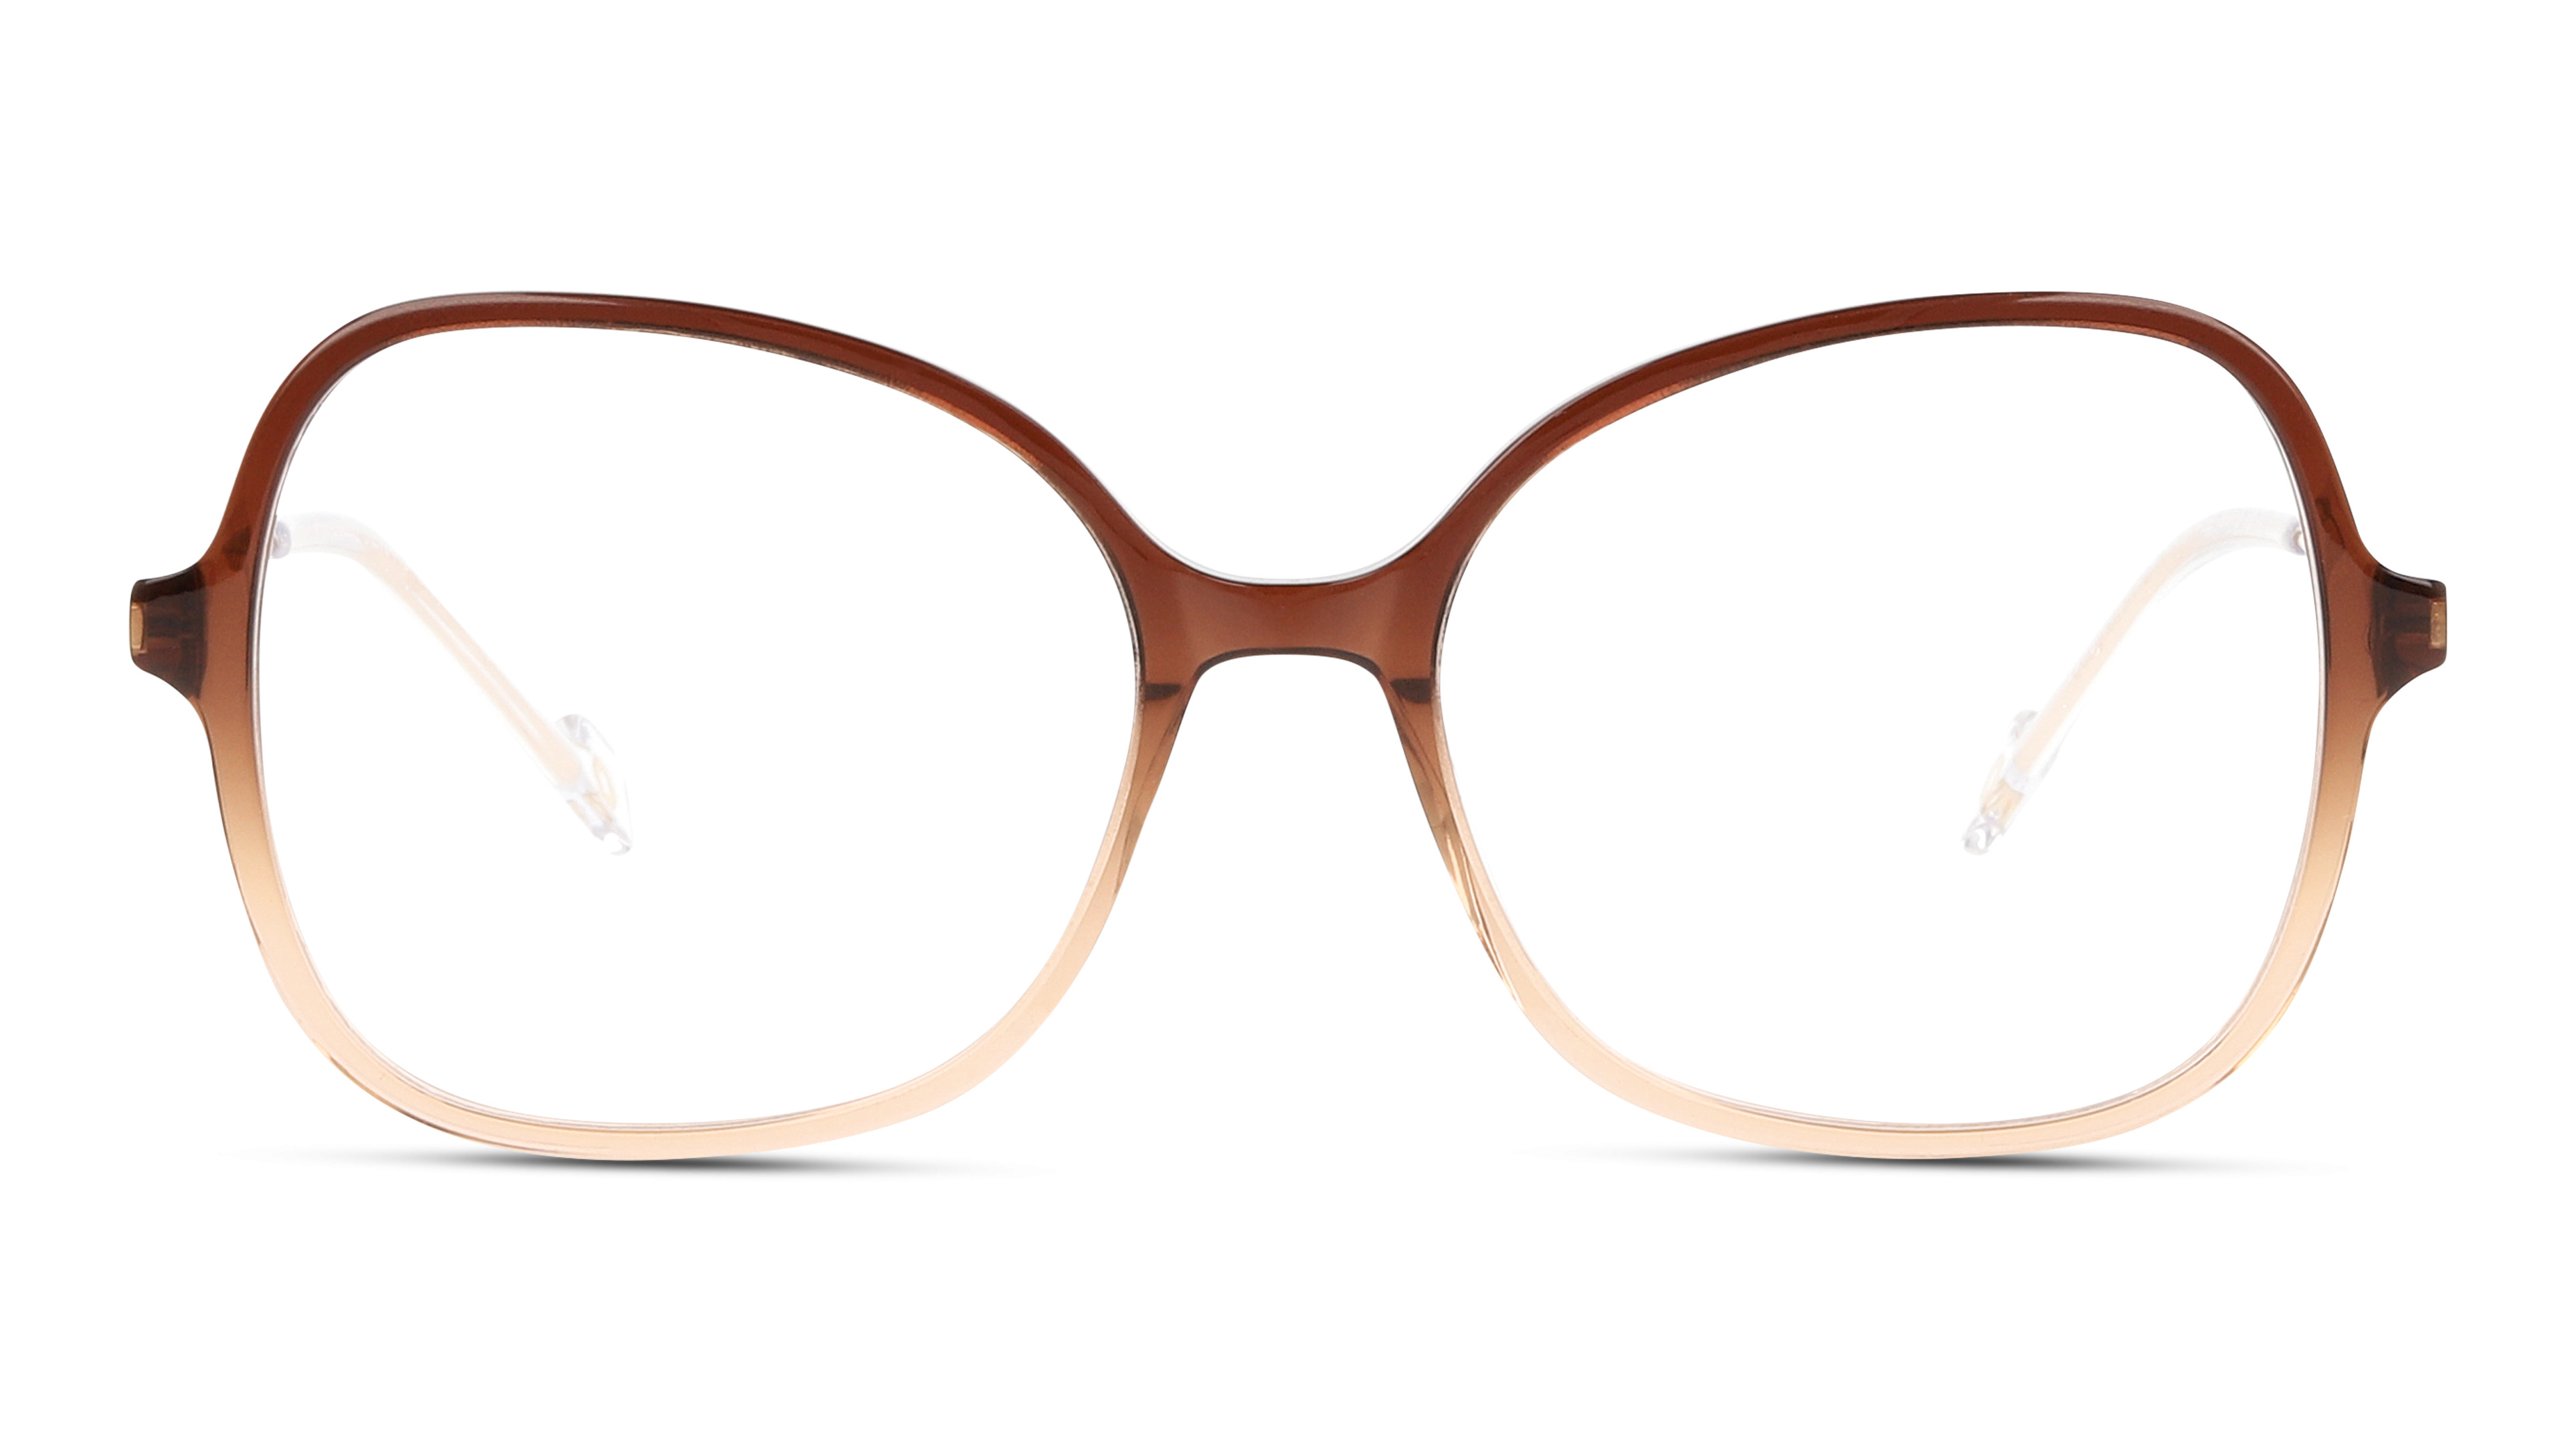 8719154584442-front-01-in-style-iskf12-eyewear-other-gold